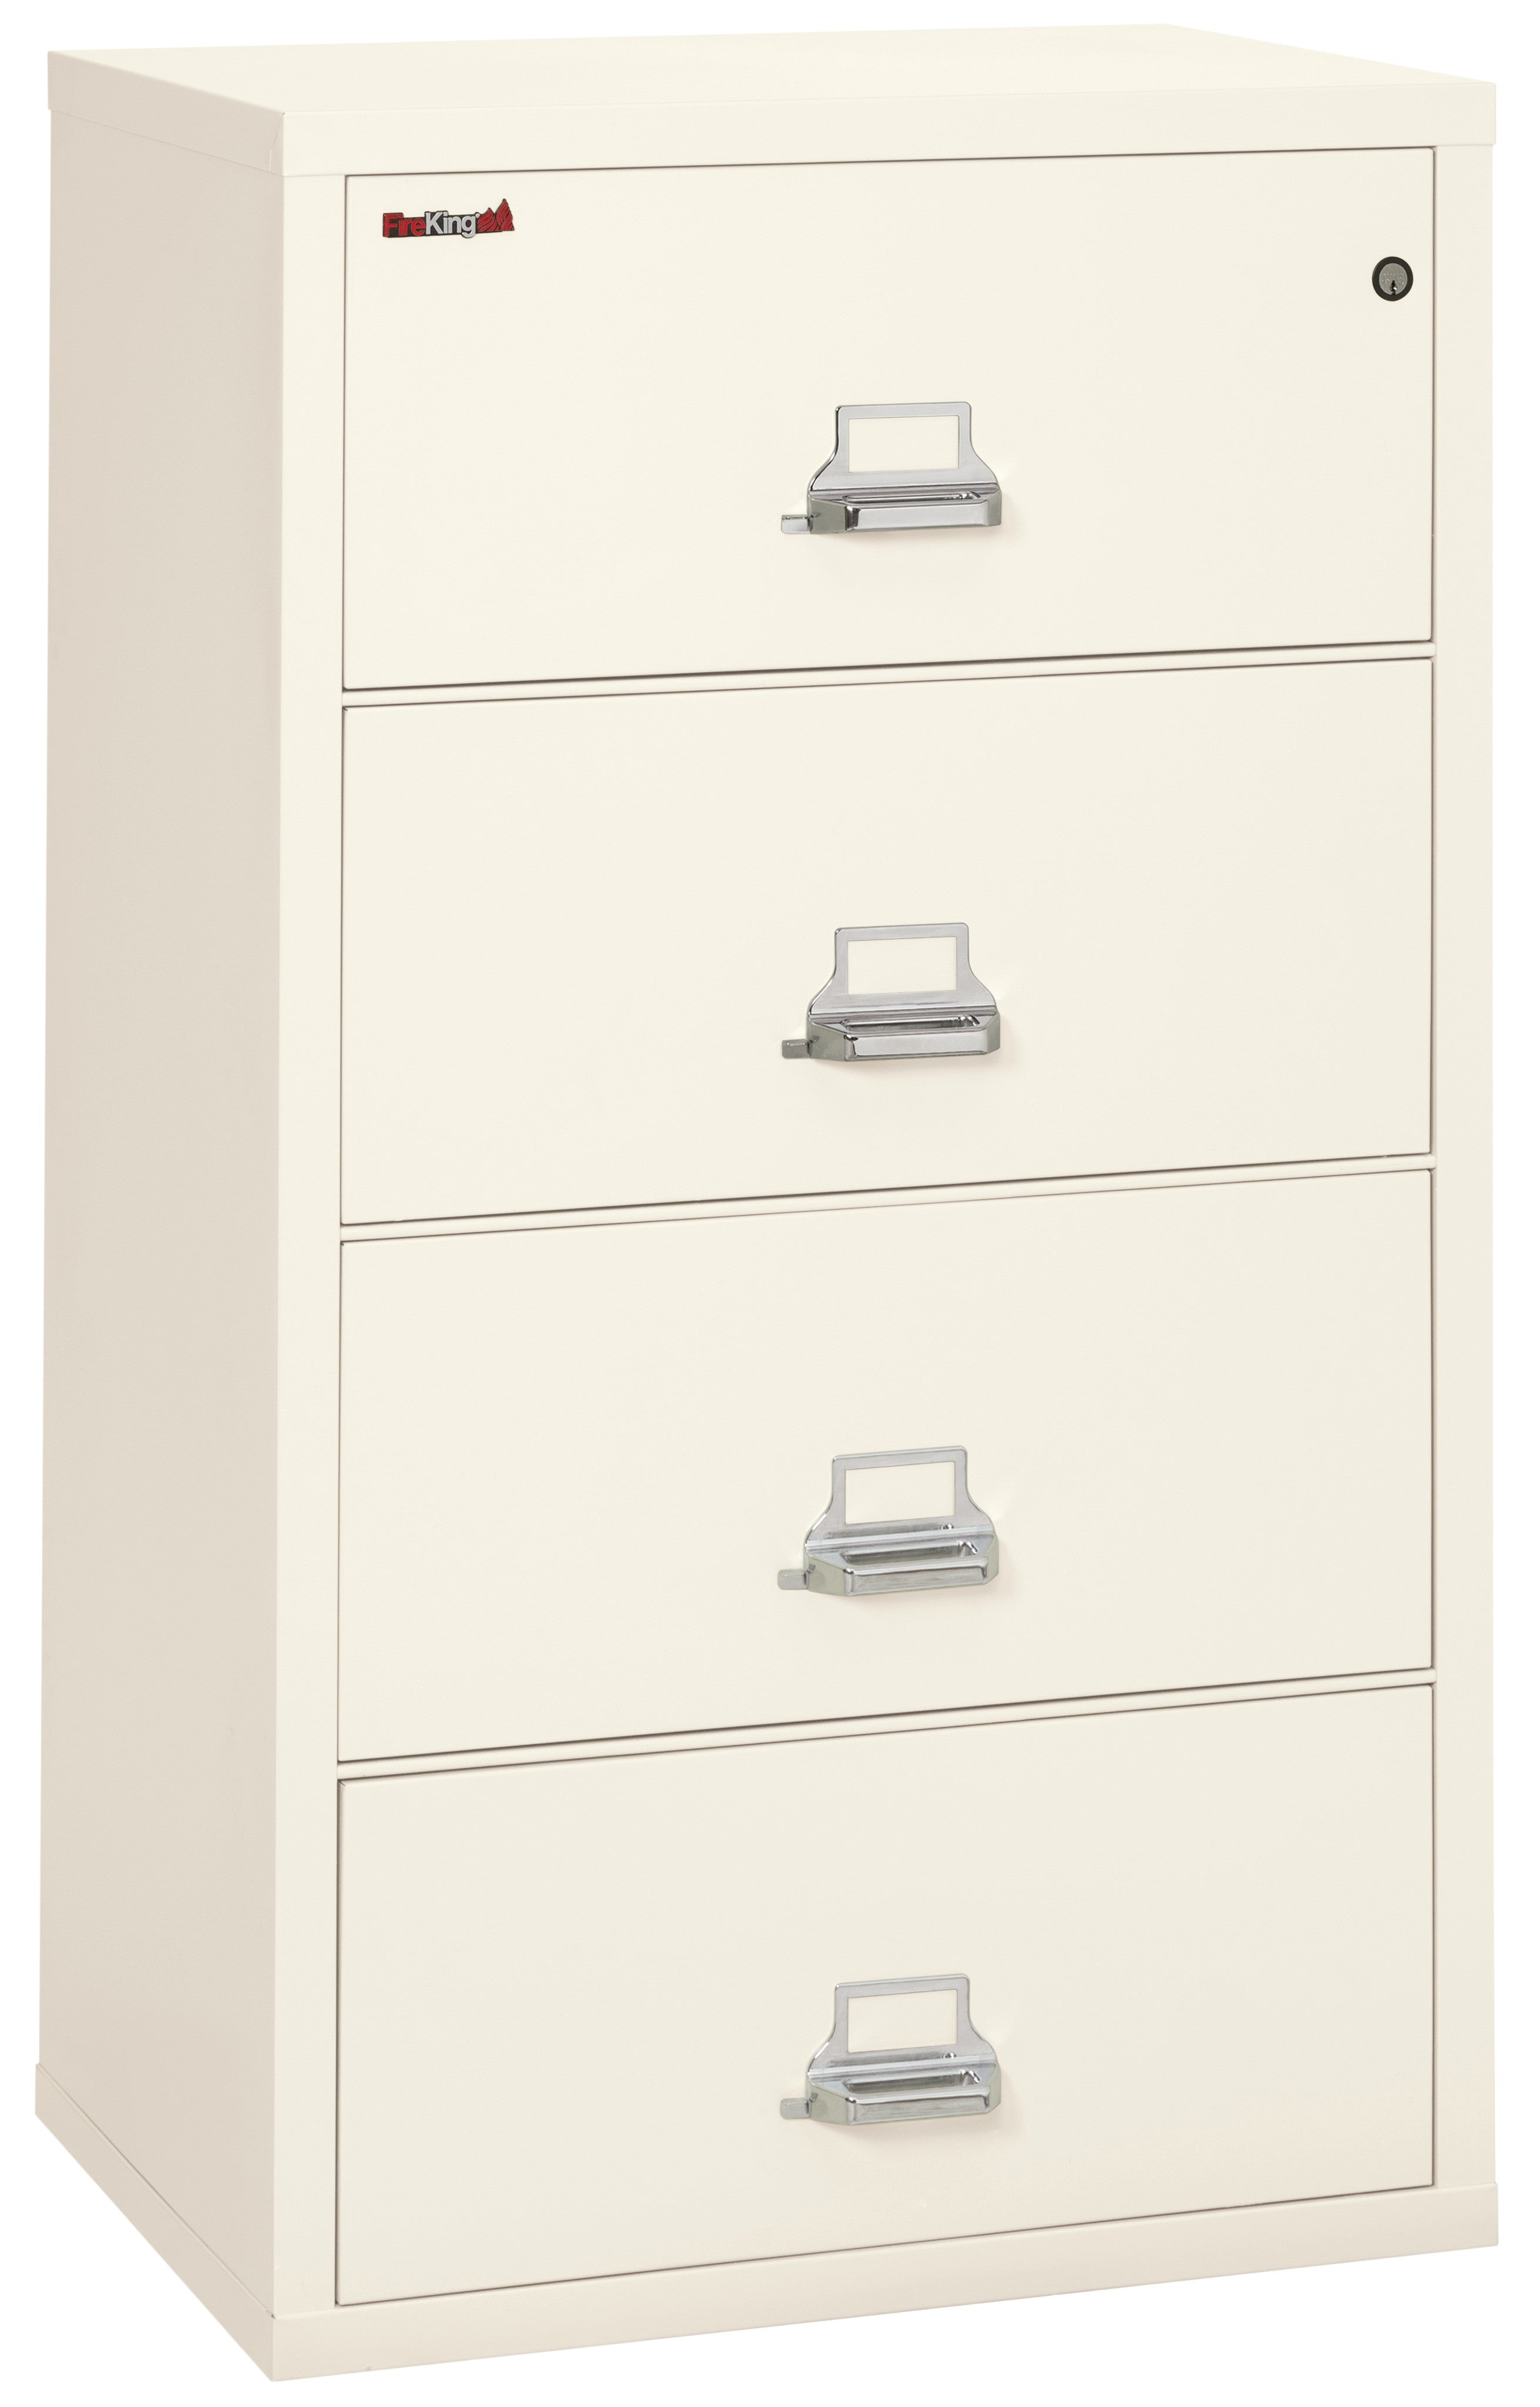 "Fireking 4 Drawer 31"" wide Classic Lateral File Cabinet"